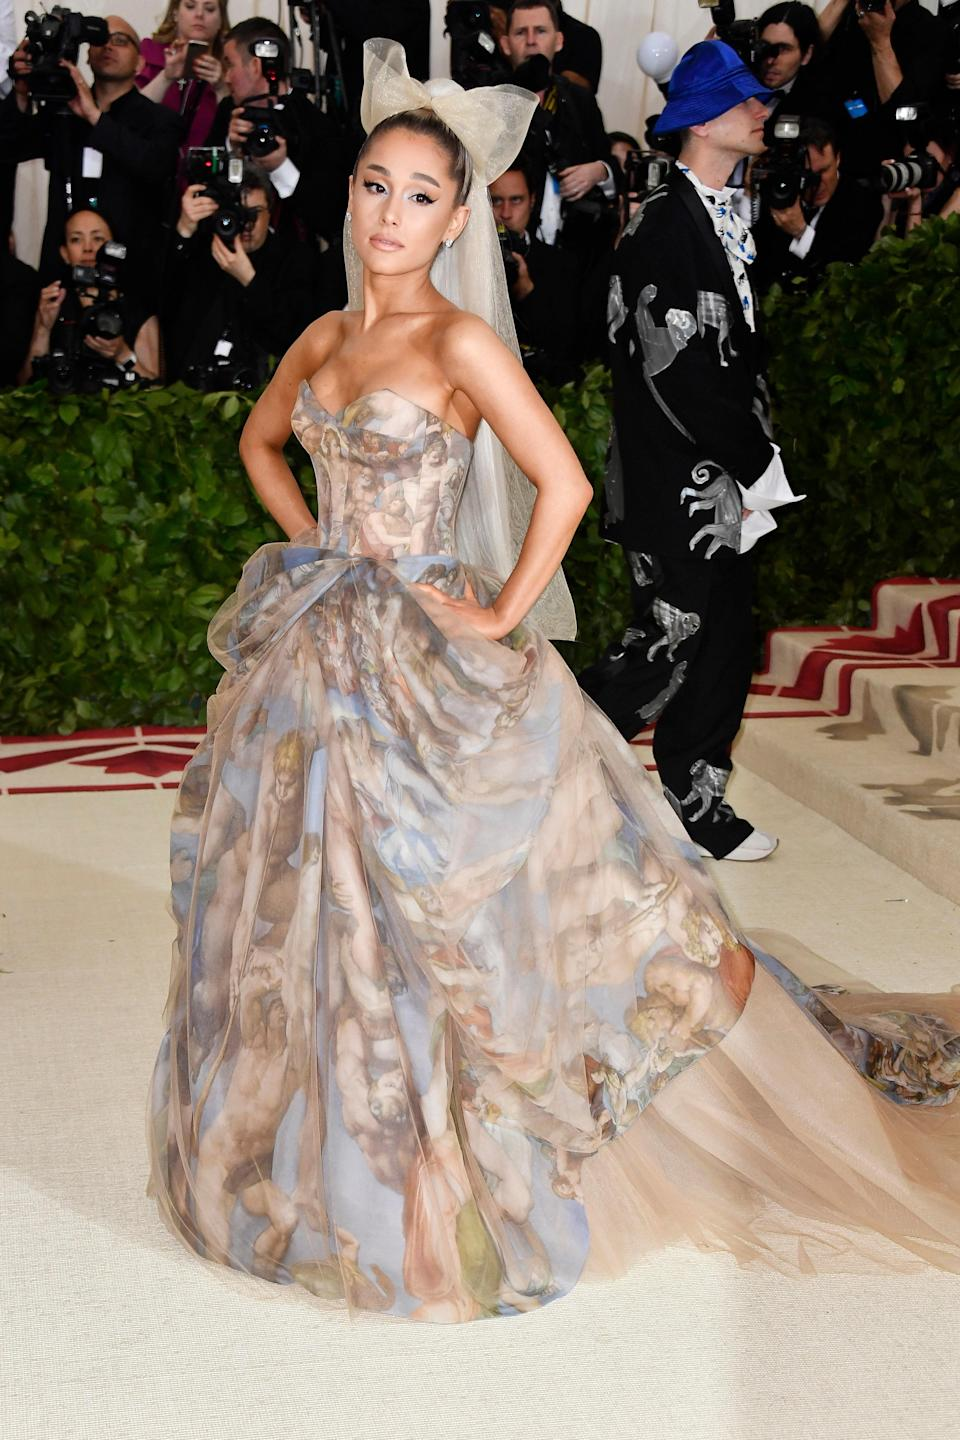 Grande clearly took notes for the 2018 Met Gala's Heavenly Bodies theme and arrived in a custom Vera Wang gown featuring an all-over print of the Sistine Chapel. Final score: a look that is truly heaven on earth.